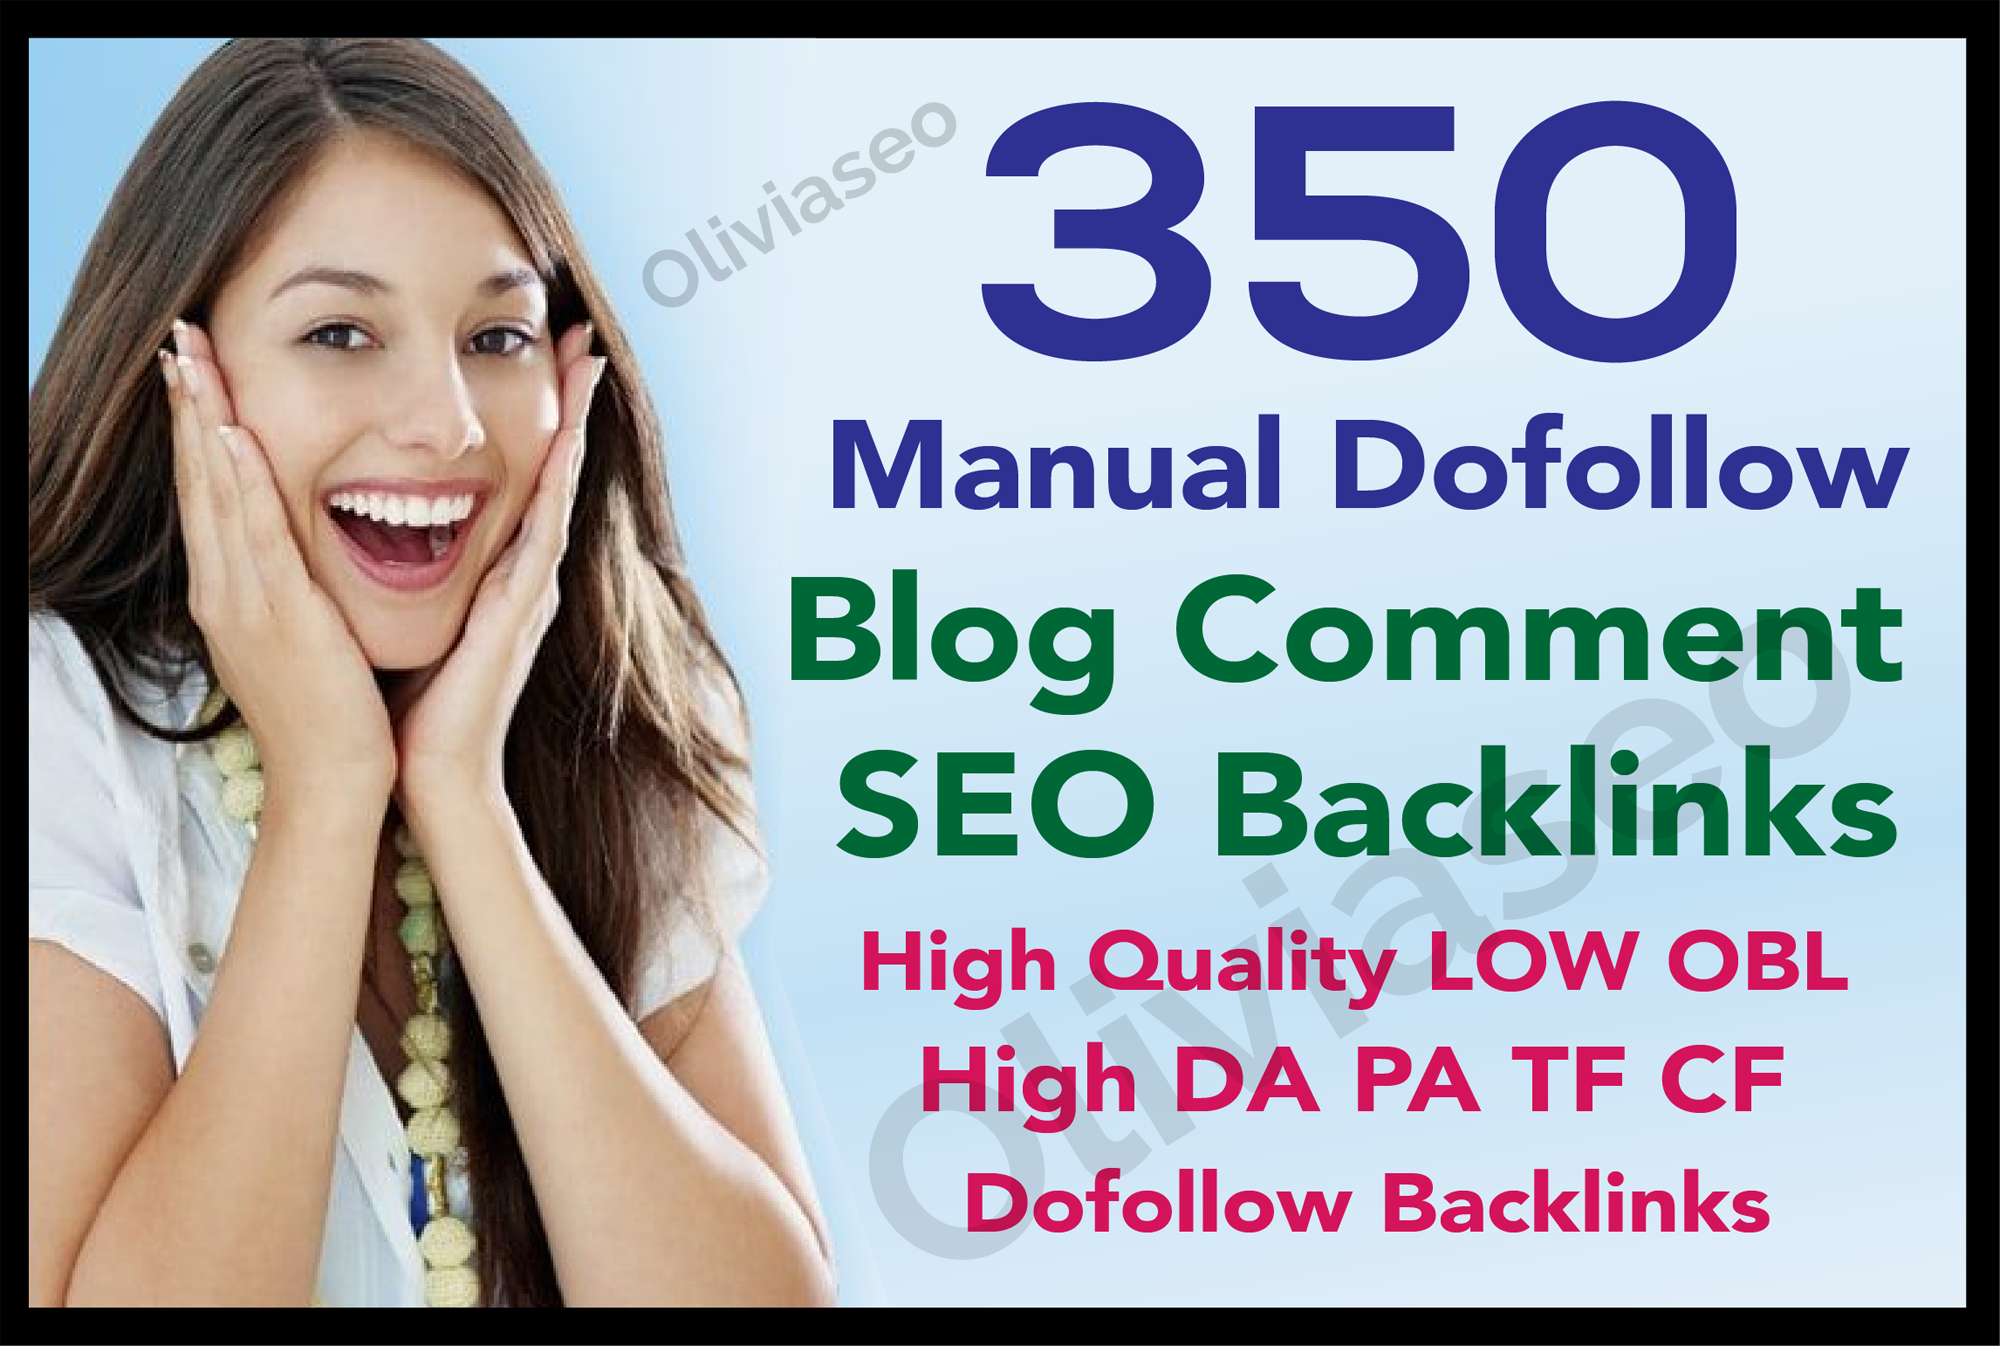 I Will Create 350 Blog Comments unique domain and manually Dofollow Backlinks High Authority